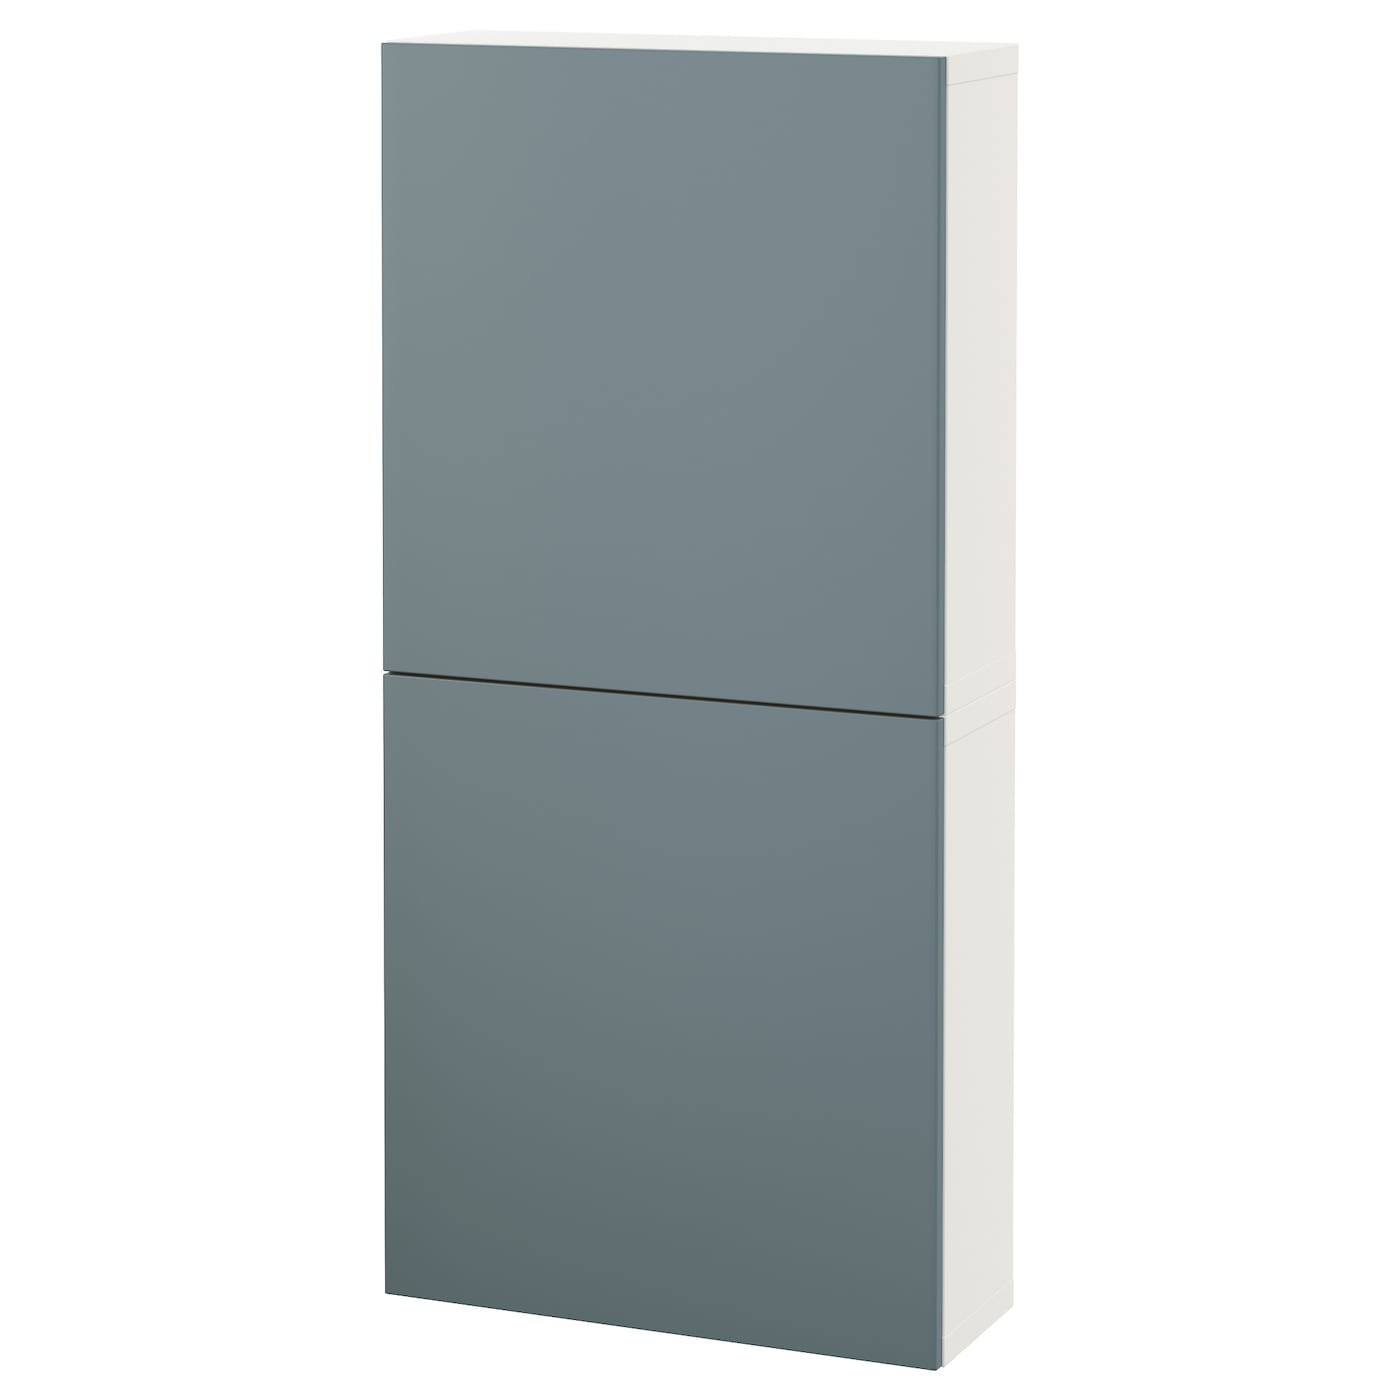 Best wall cabinet with 2 doors white valviken grey for Meuble mural ikea